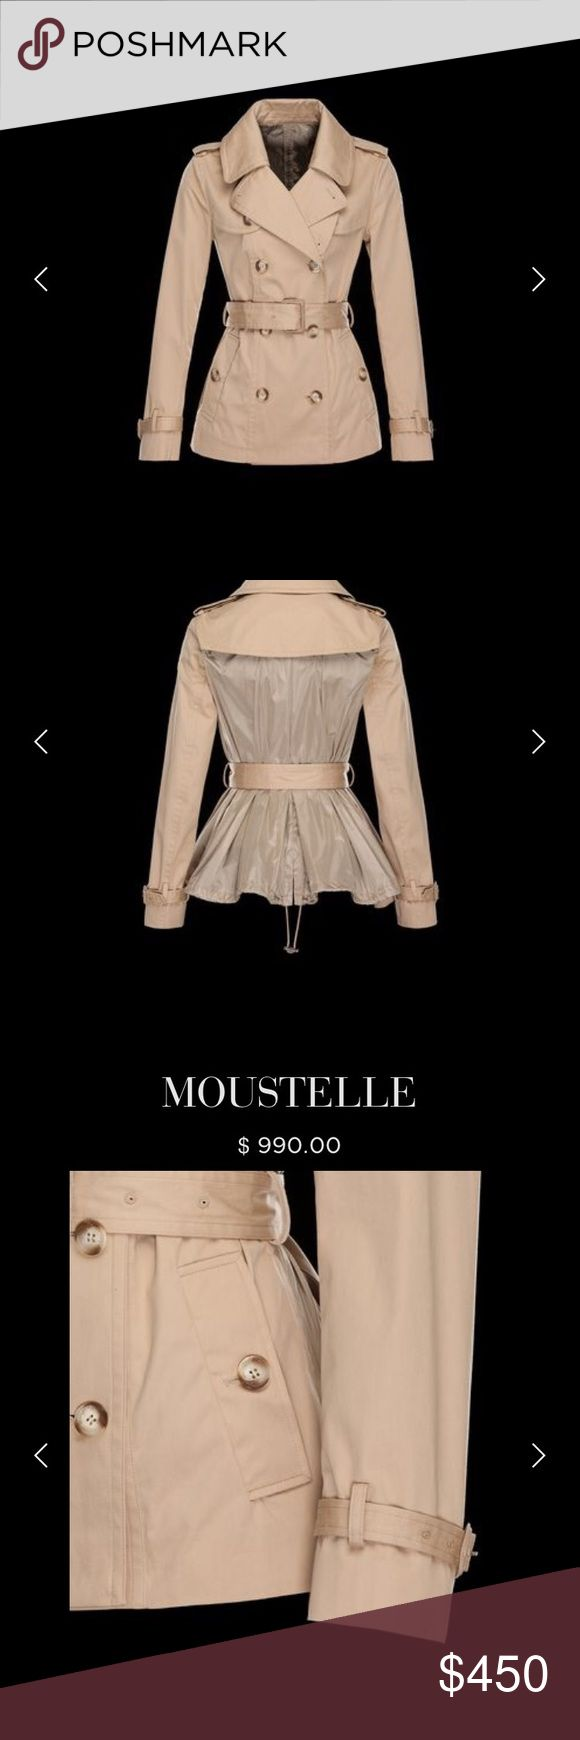 Authentic Moncler Jacket🎀 Dont be caught in the rain without this STEAL of a rain coat! Retails for 990 on the website and was purchased at Nordstrom! Super chic! Guaranteed authentic and comfortable!! Moncler Jackets  Coats Trench Coats